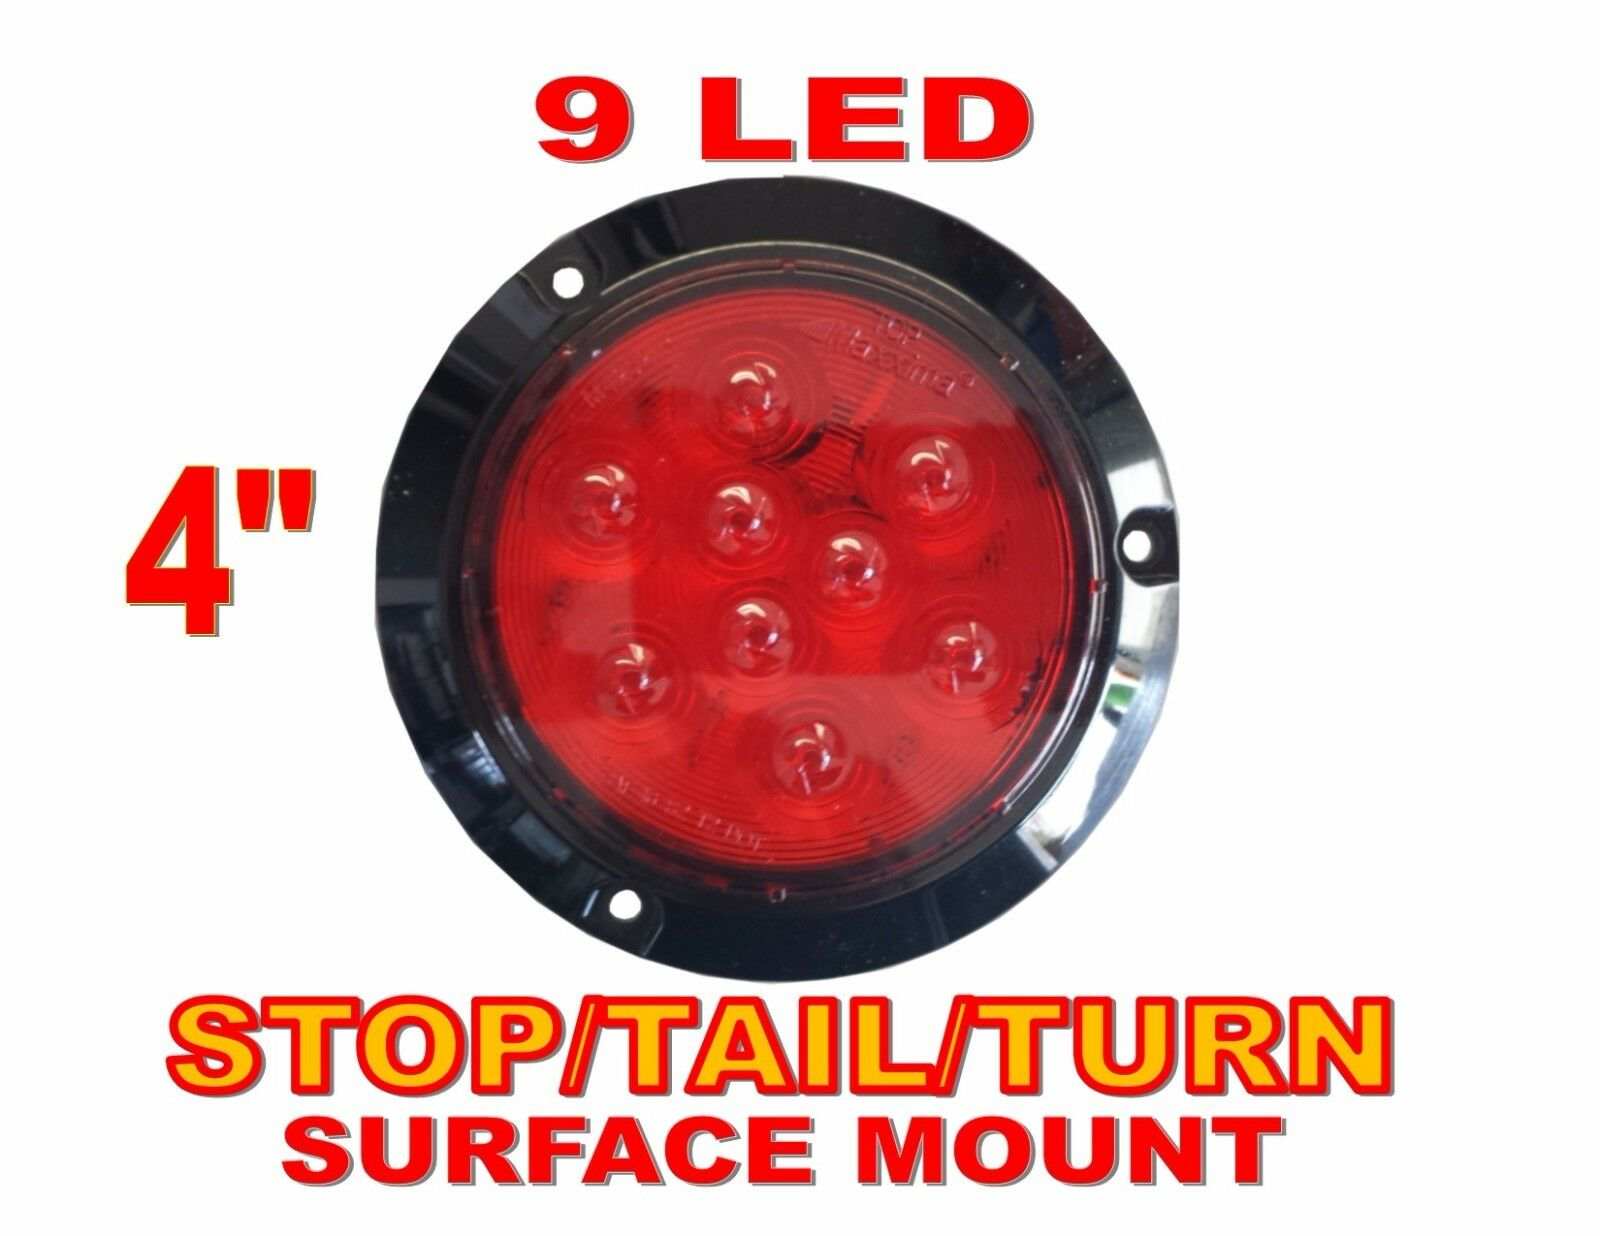 Red 4 Quot Round Stop Turn Tail Light 9 Led Surface Mount Ebay